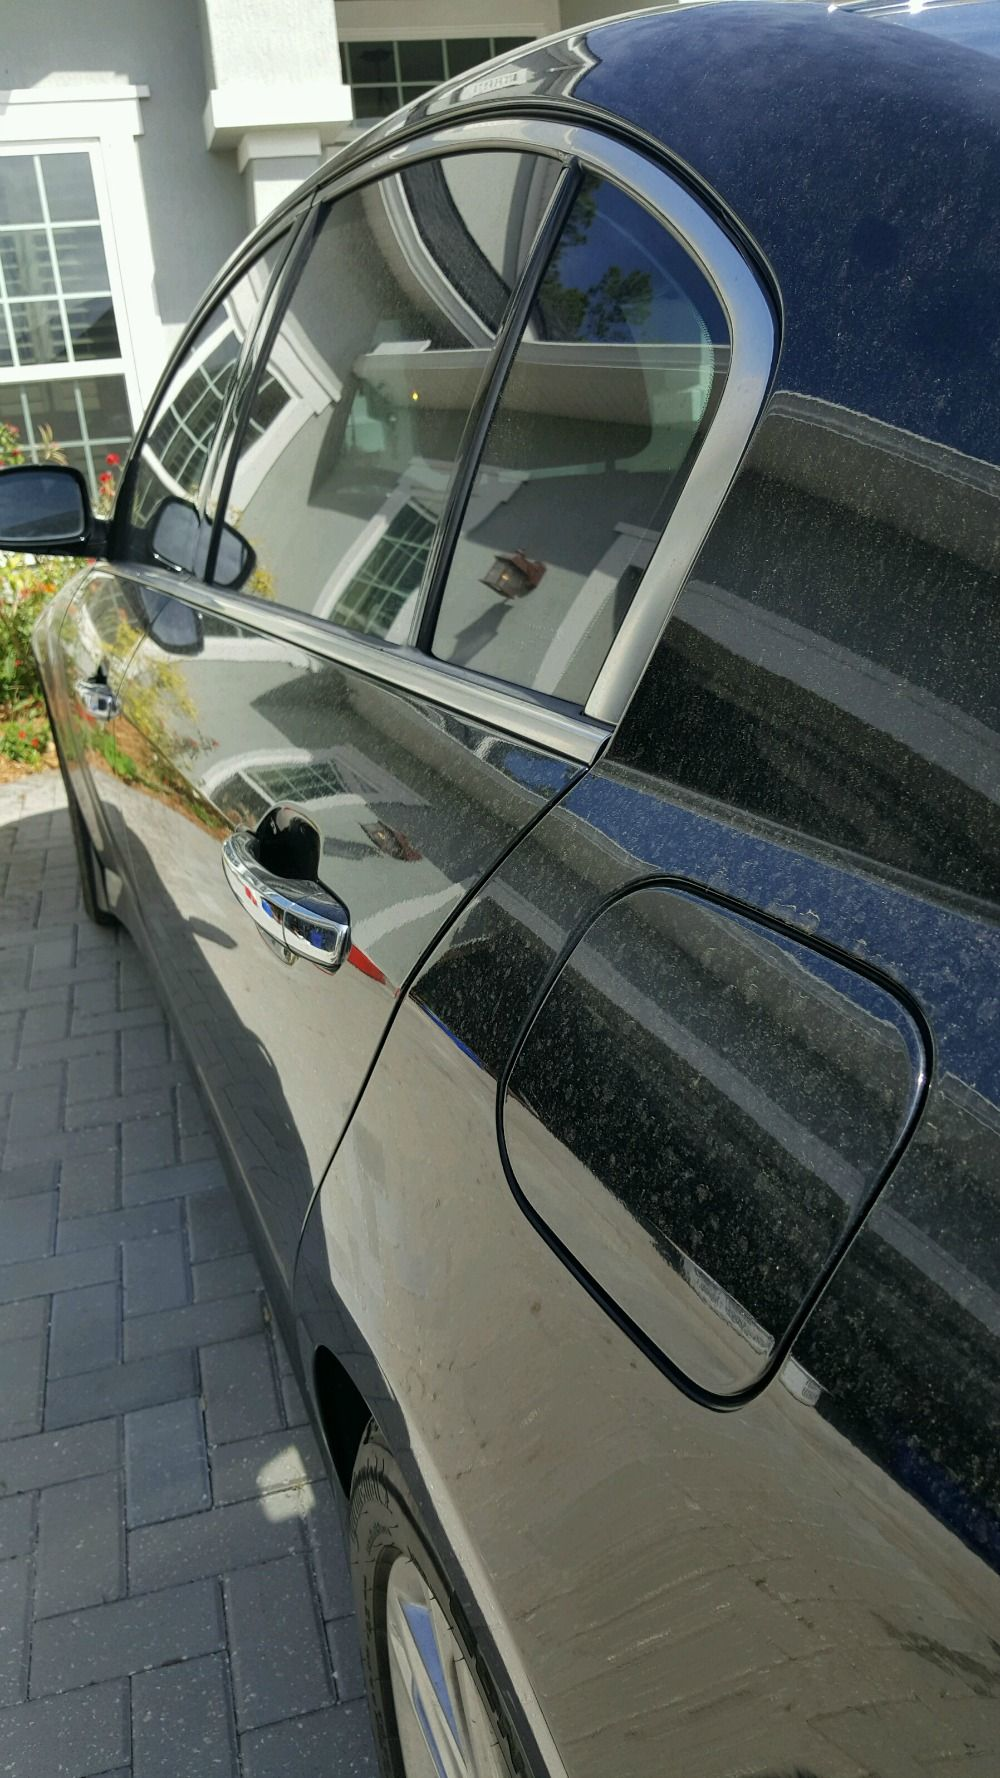 Complete instructions to remove hard water spots from car